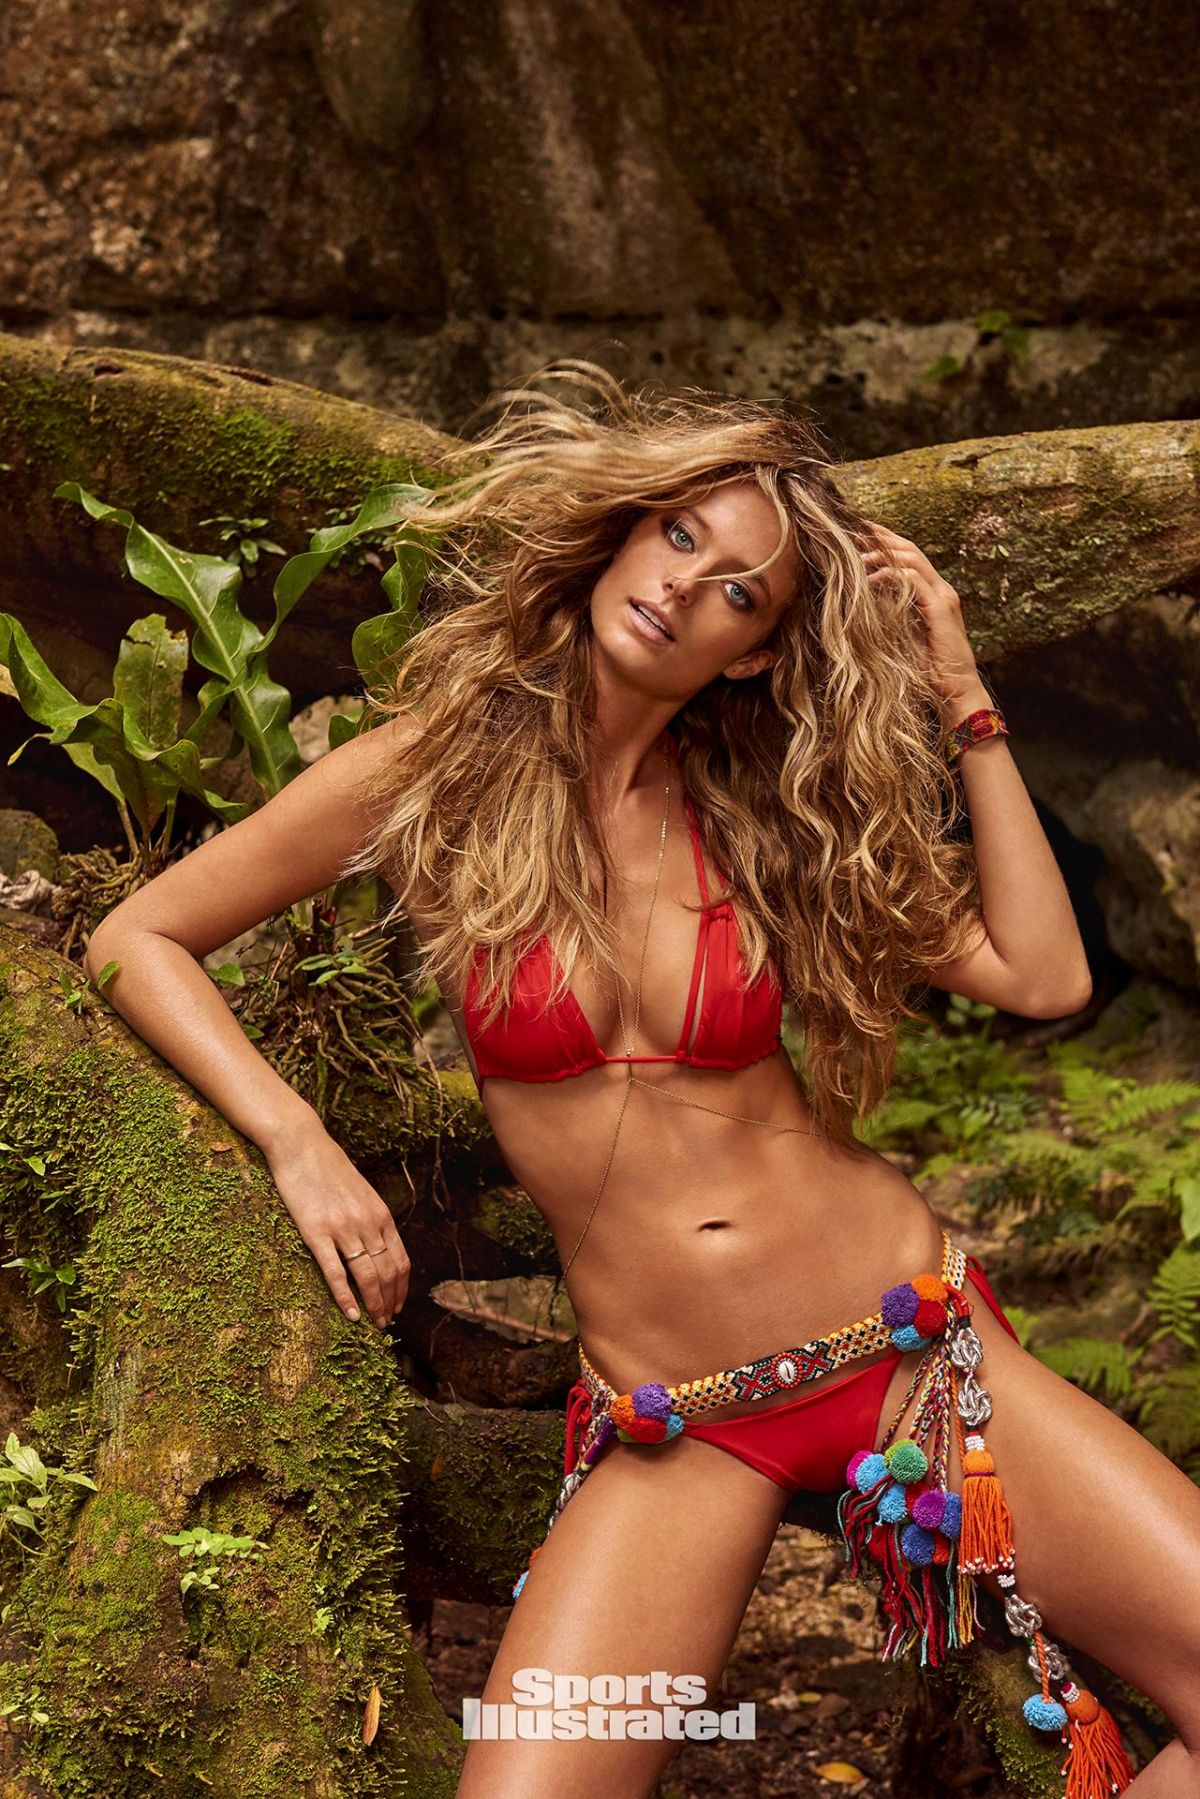 Kate Bock For Sports Illustrated Swimsuit Issue 2017 - Celebzz